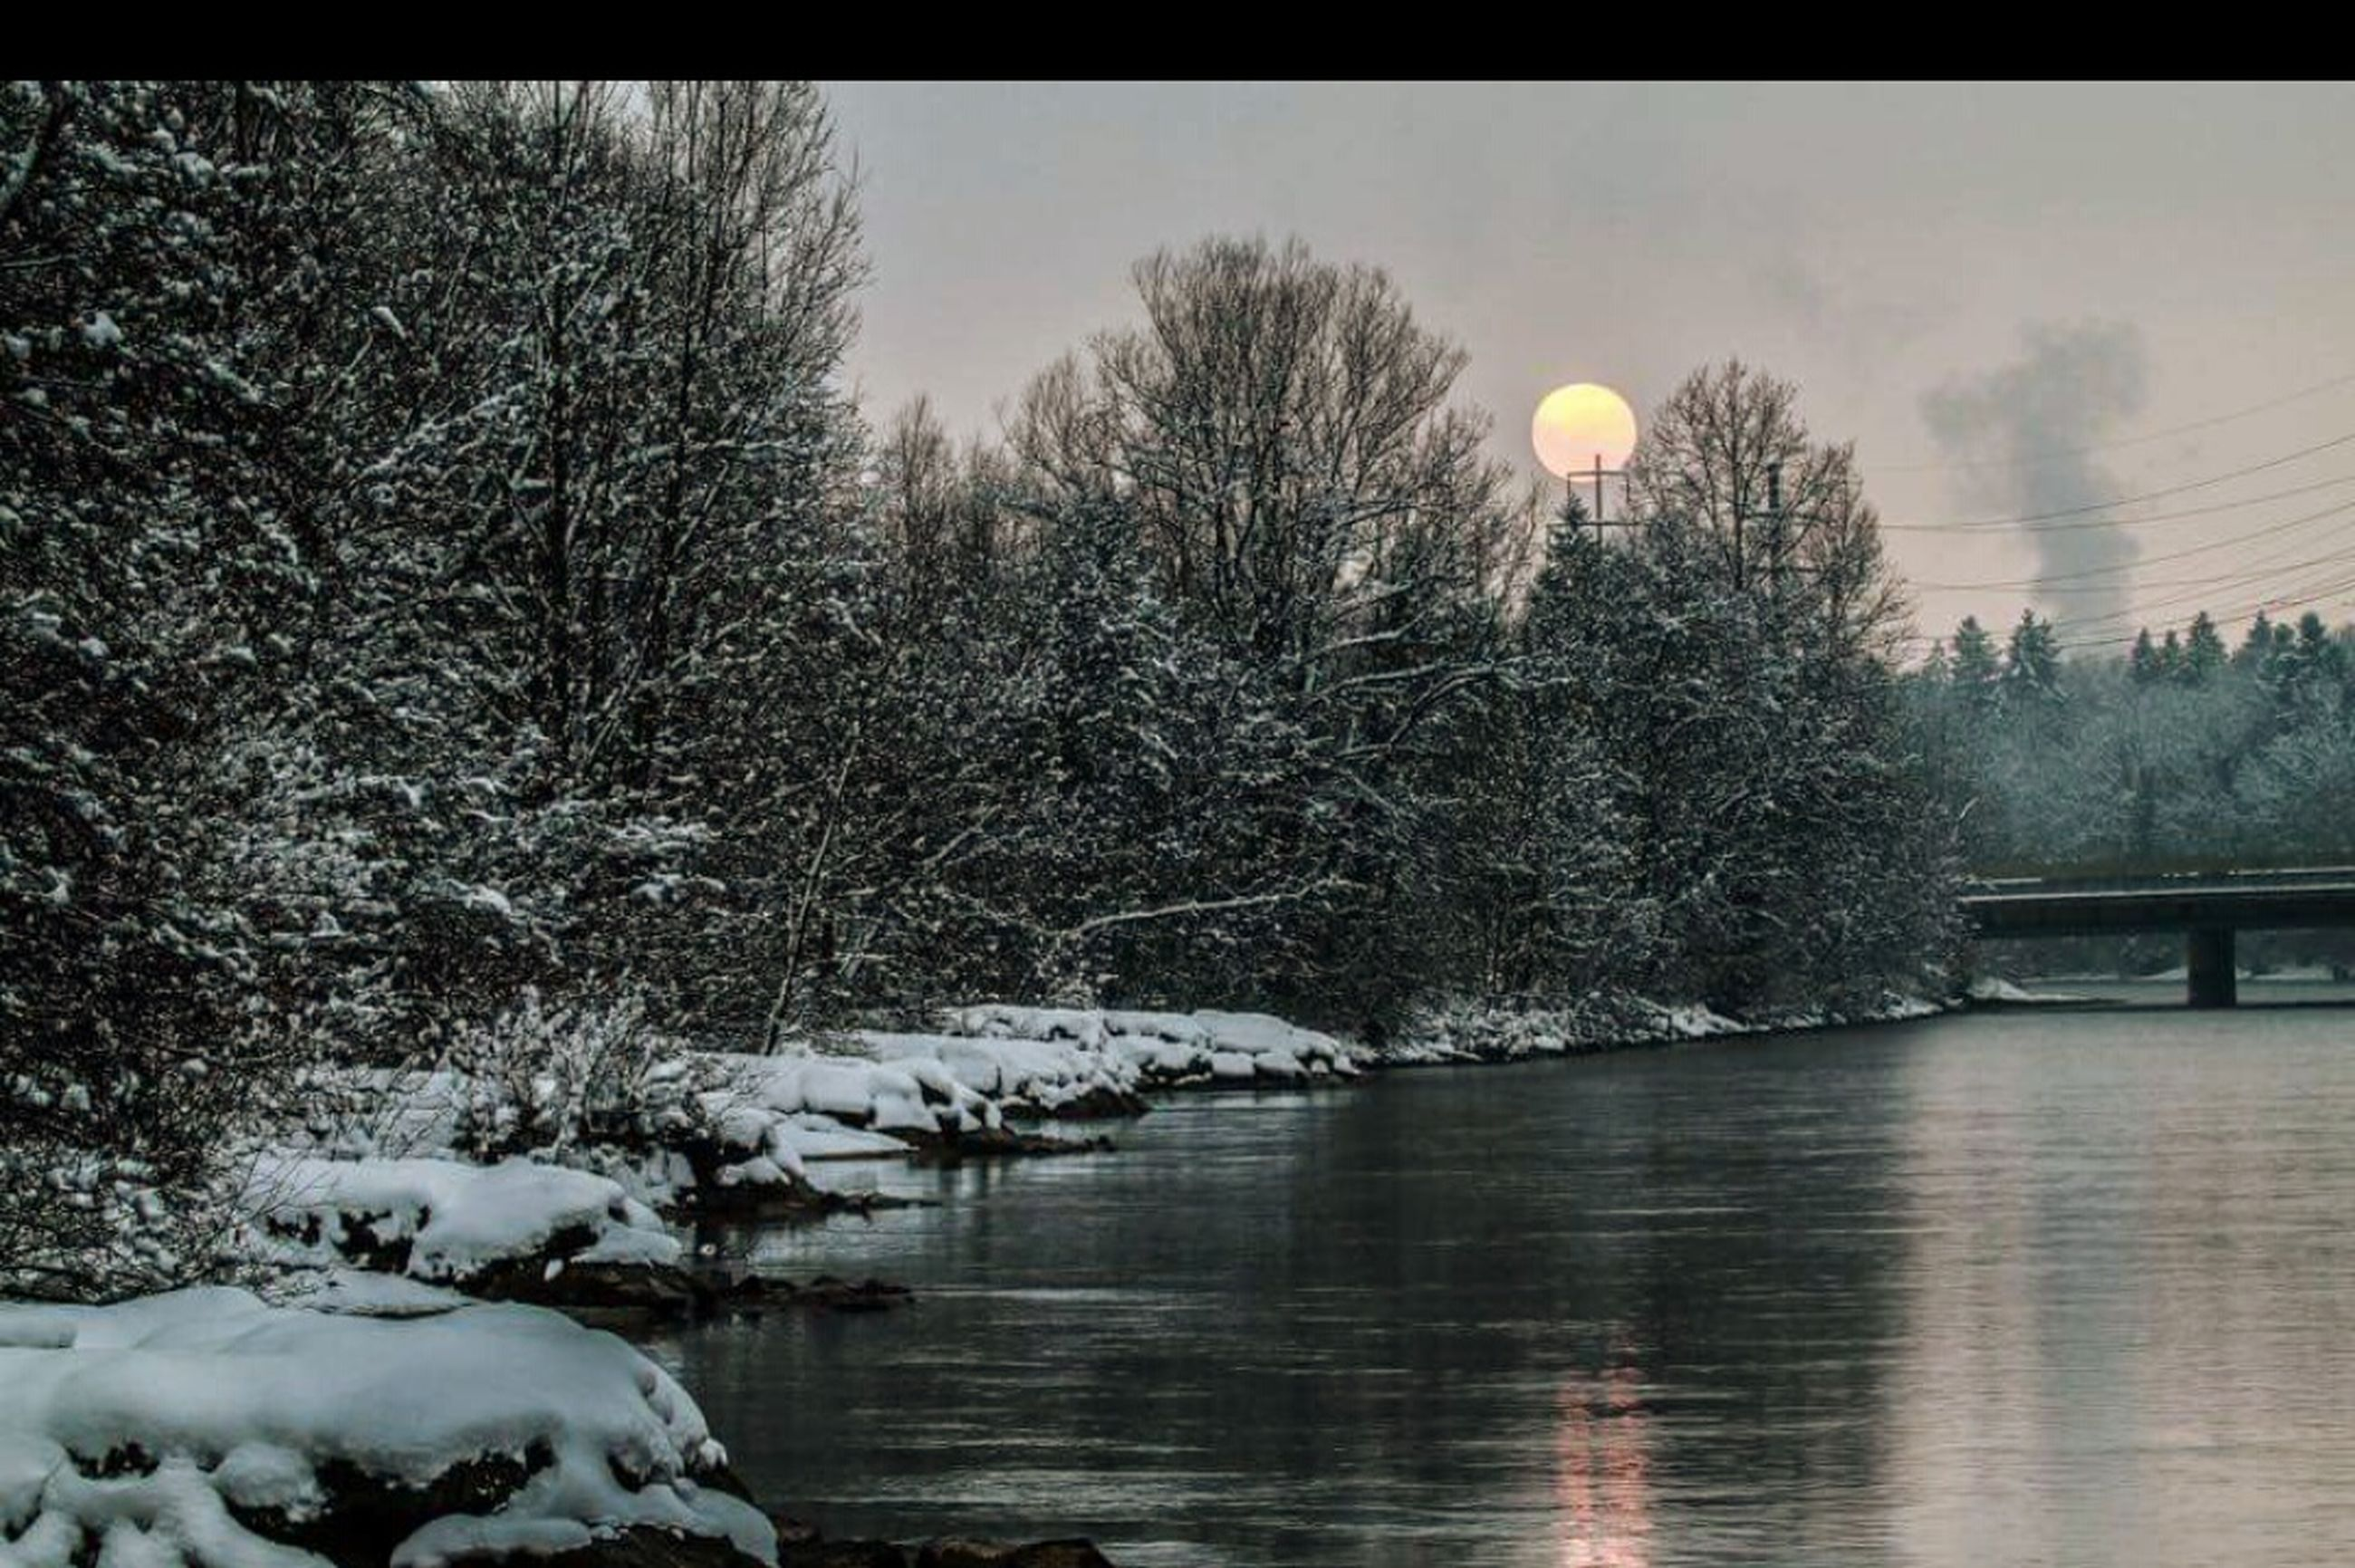 snow, winter, cold temperature, bare tree, tree, season, tranquil scene, tranquility, water, sky, weather, scenics, beauty in nature, nature, lake, river, frozen, reflection, branch, covering